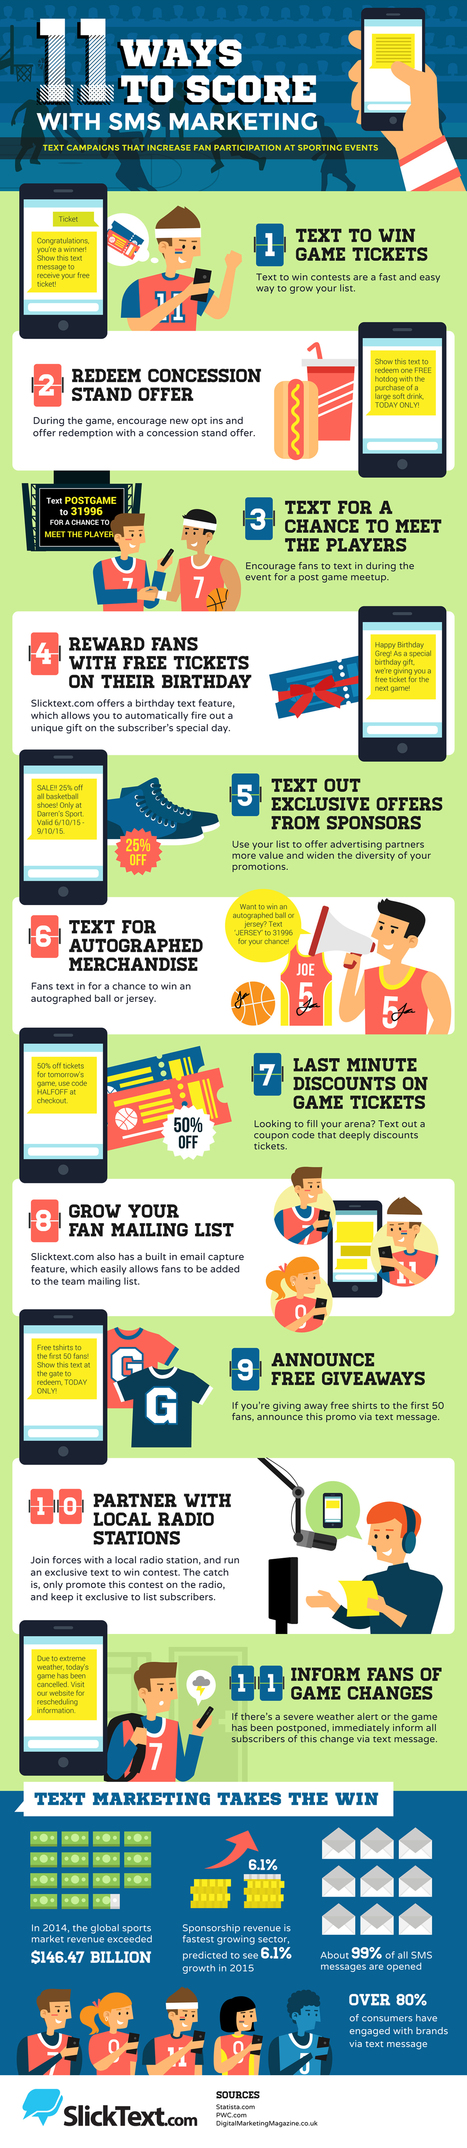 11 Ways to Score with SMS Marketing #Infographic | MarketingHits | Scoop.it